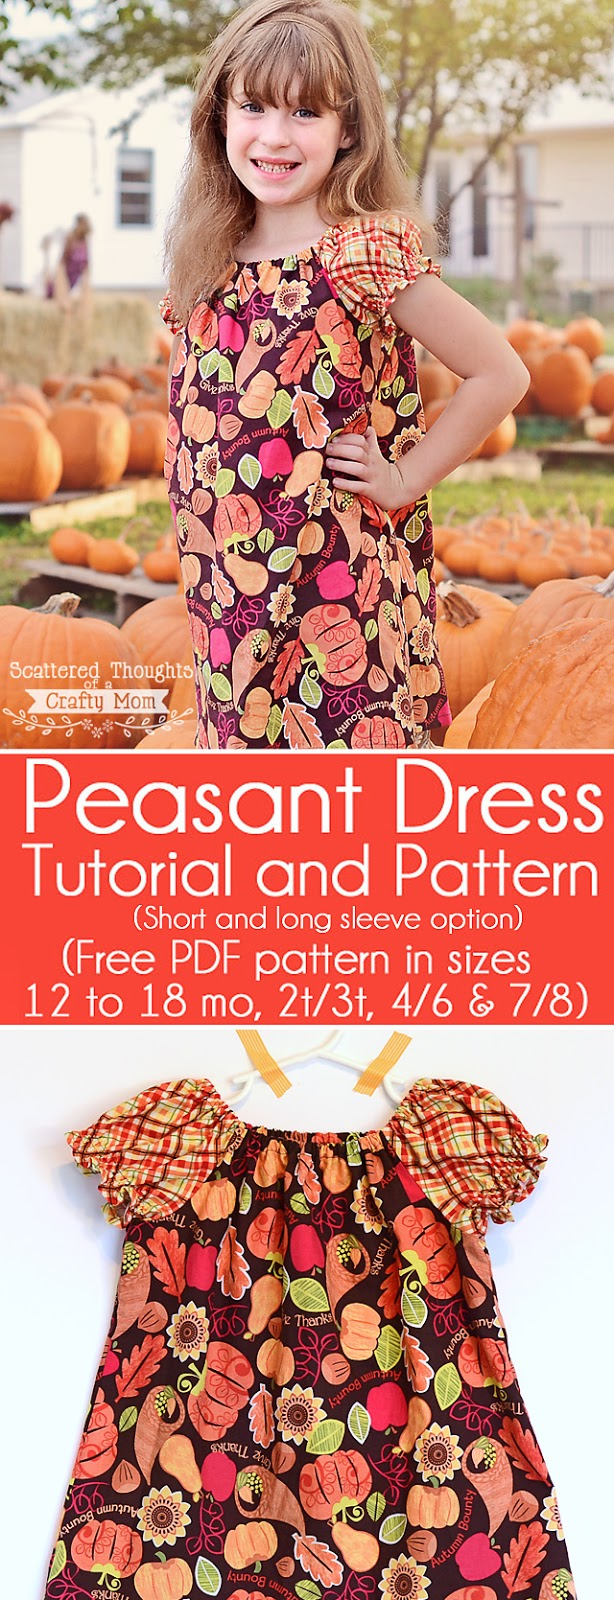 Free Peasant Dress Tutorial and Pattern in sizes 12 months to 8. (Printable pdf pattern)